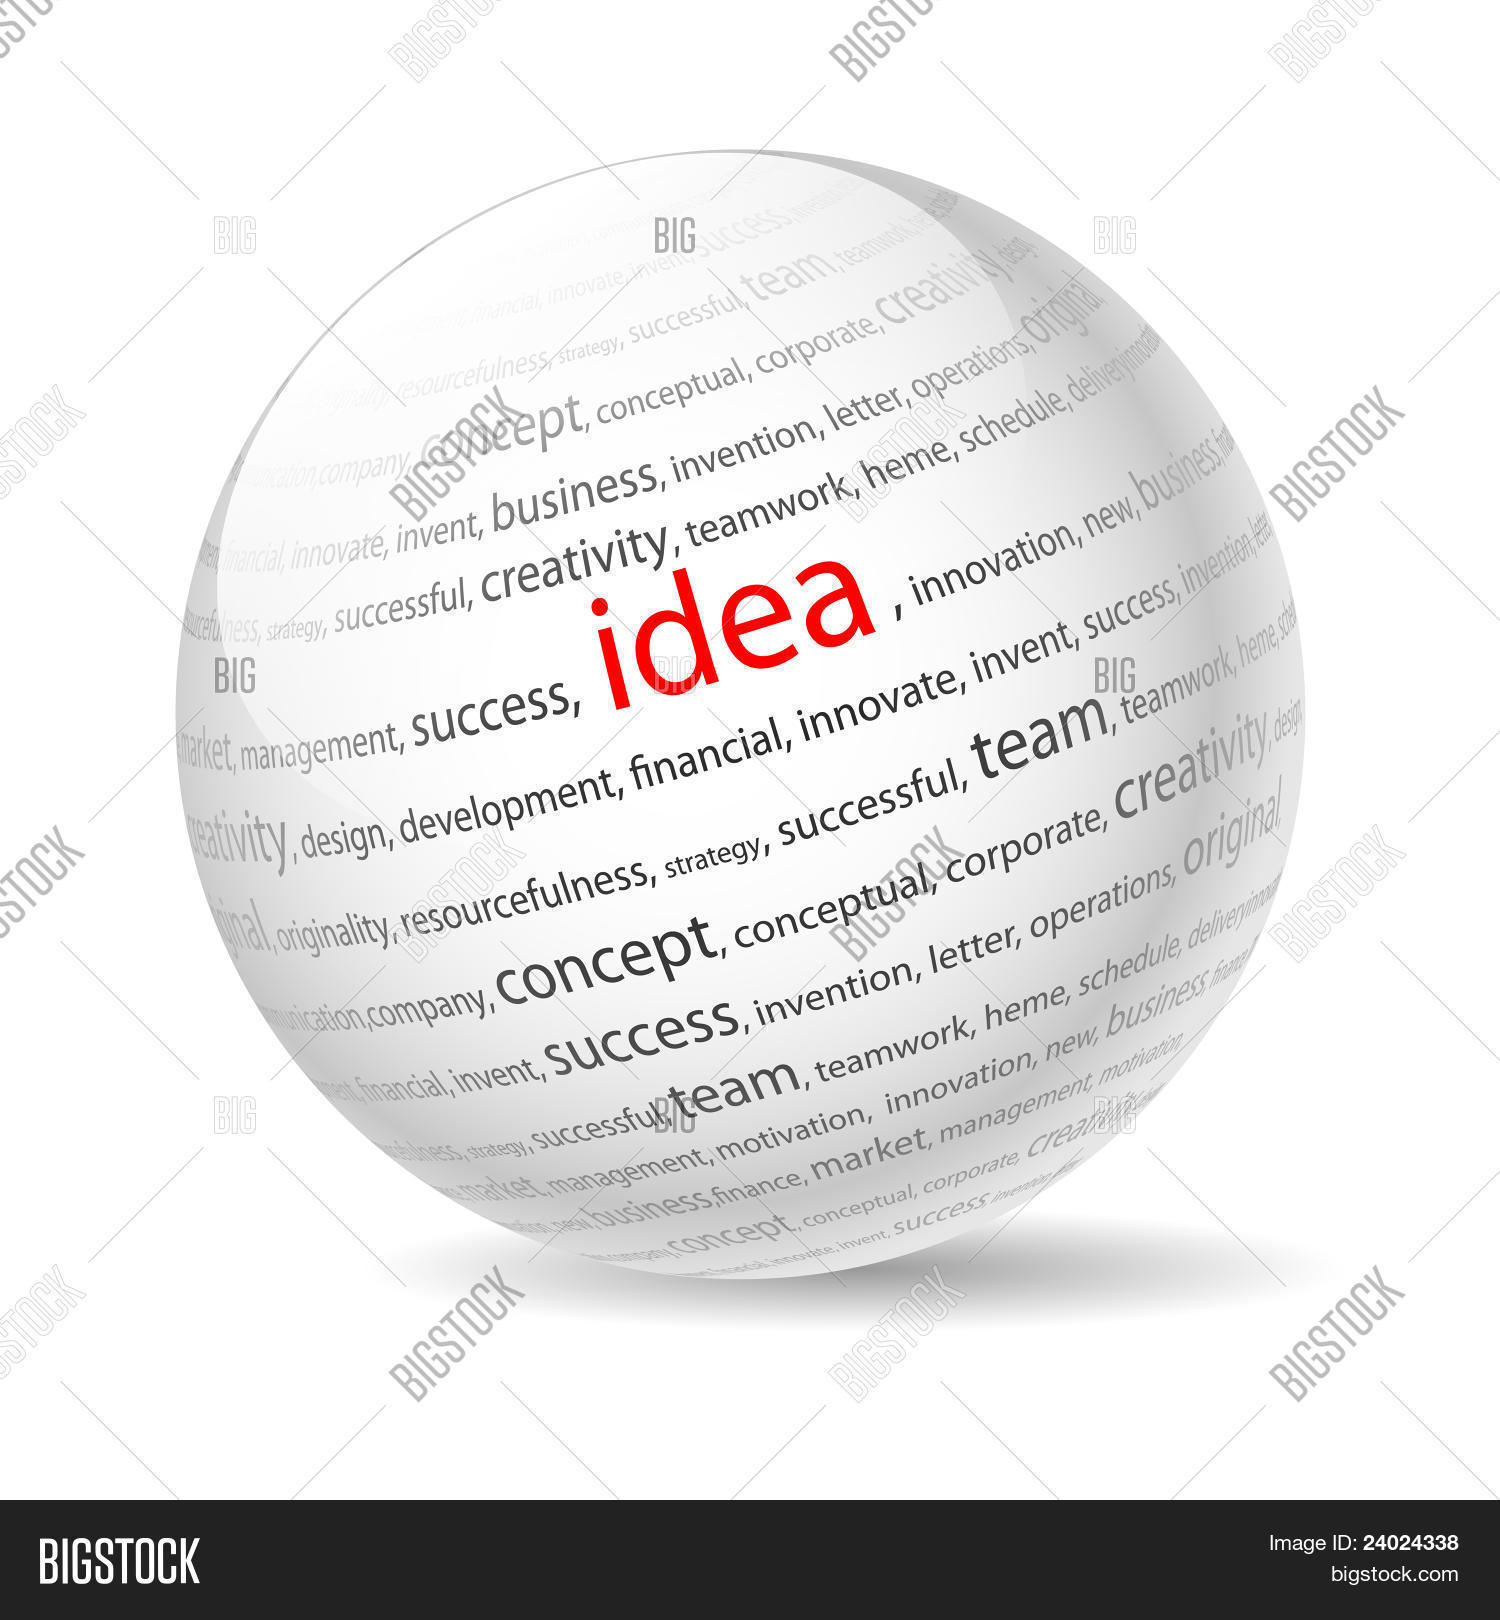 3d,abstract,abstract vector,abstract vector background,art,background,ball,business,button,communication,company,concept,corporate,creative,creative ideas,design,development,finance,financial,icon,idea,illustration,innovate,innovation,invent,invention,isolated,letter,management,motivation,new,object,operations,original,resourcefulness,sentence,sphere,strategy,success,symbol,team,teamwork,text,theme,vector,vision,white,word